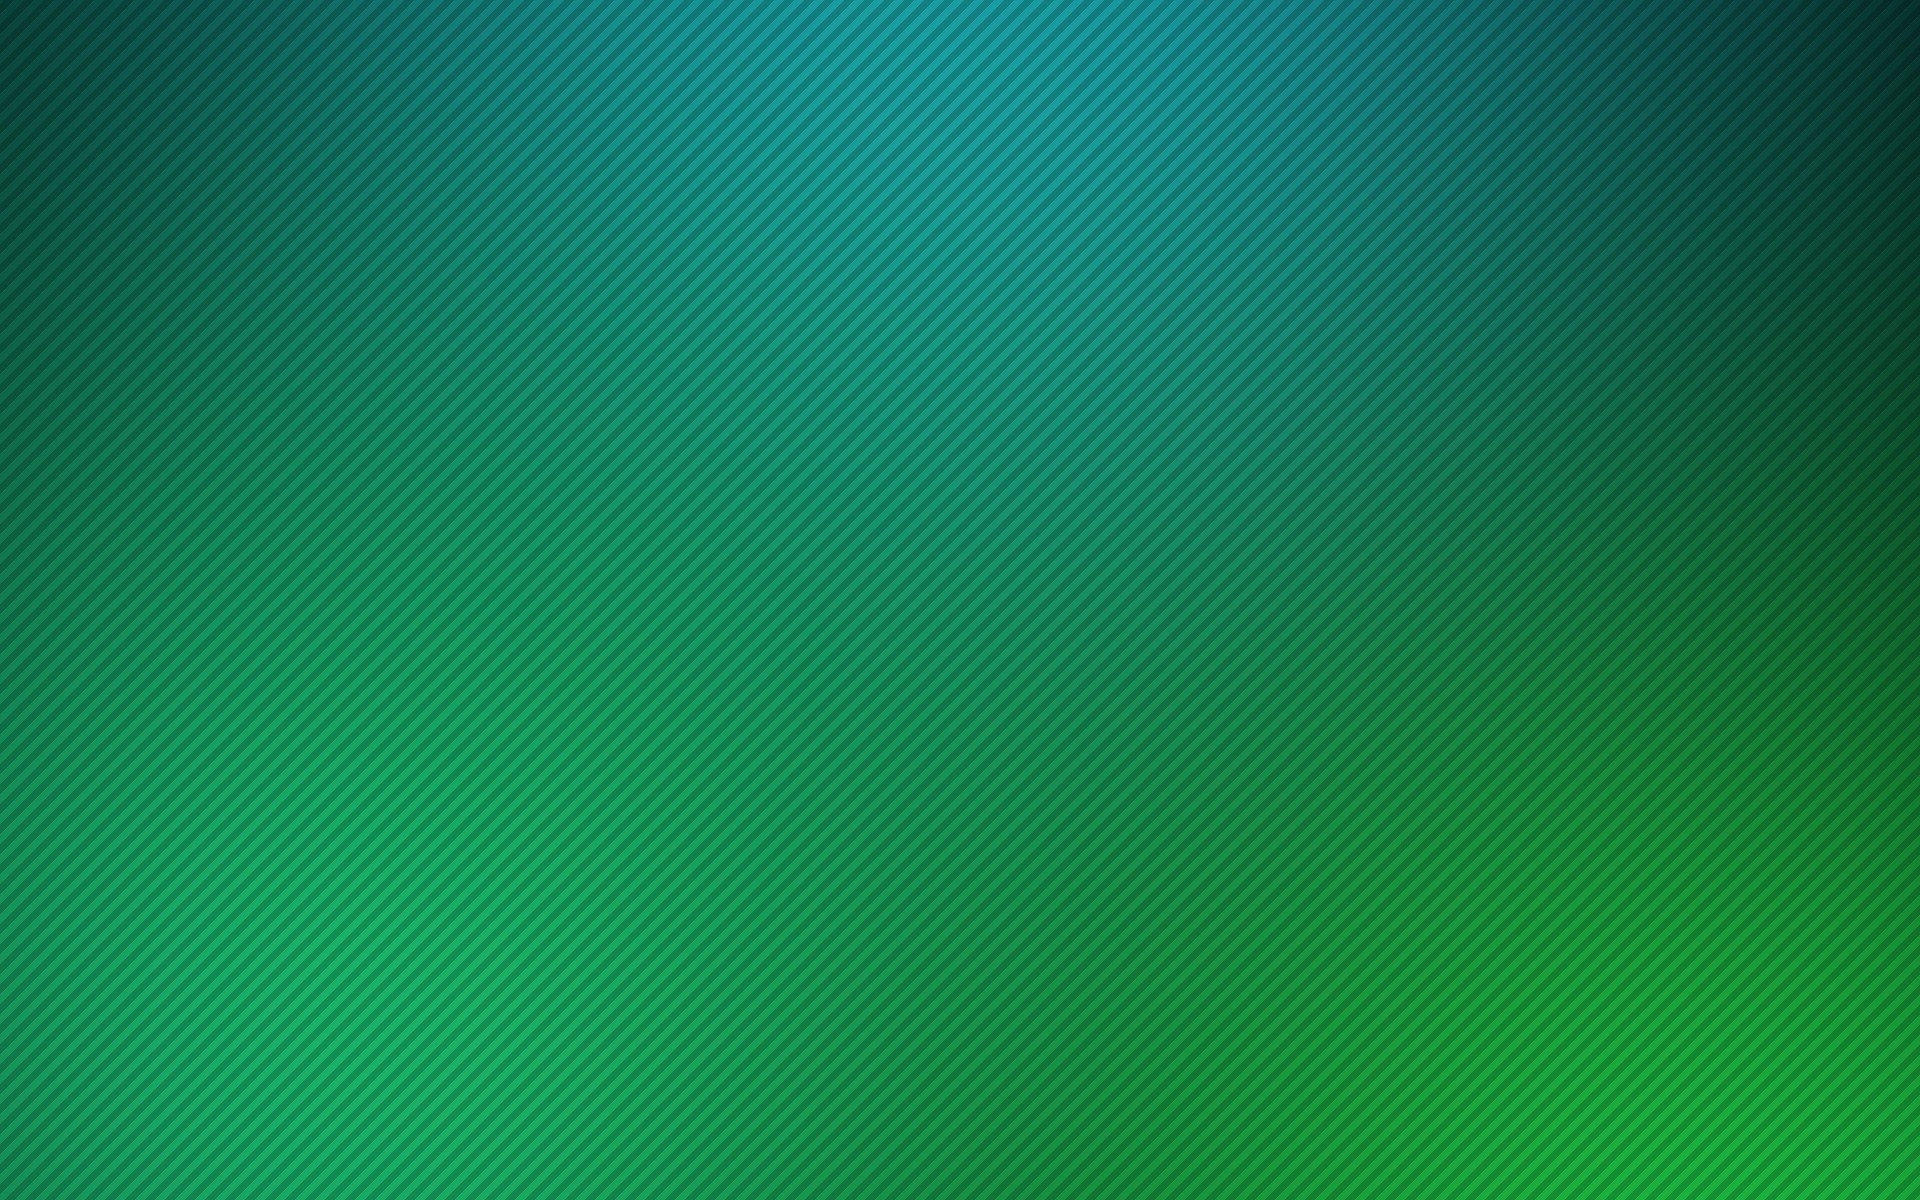 Textures gaussian blur Turquoise HD Wallpaper